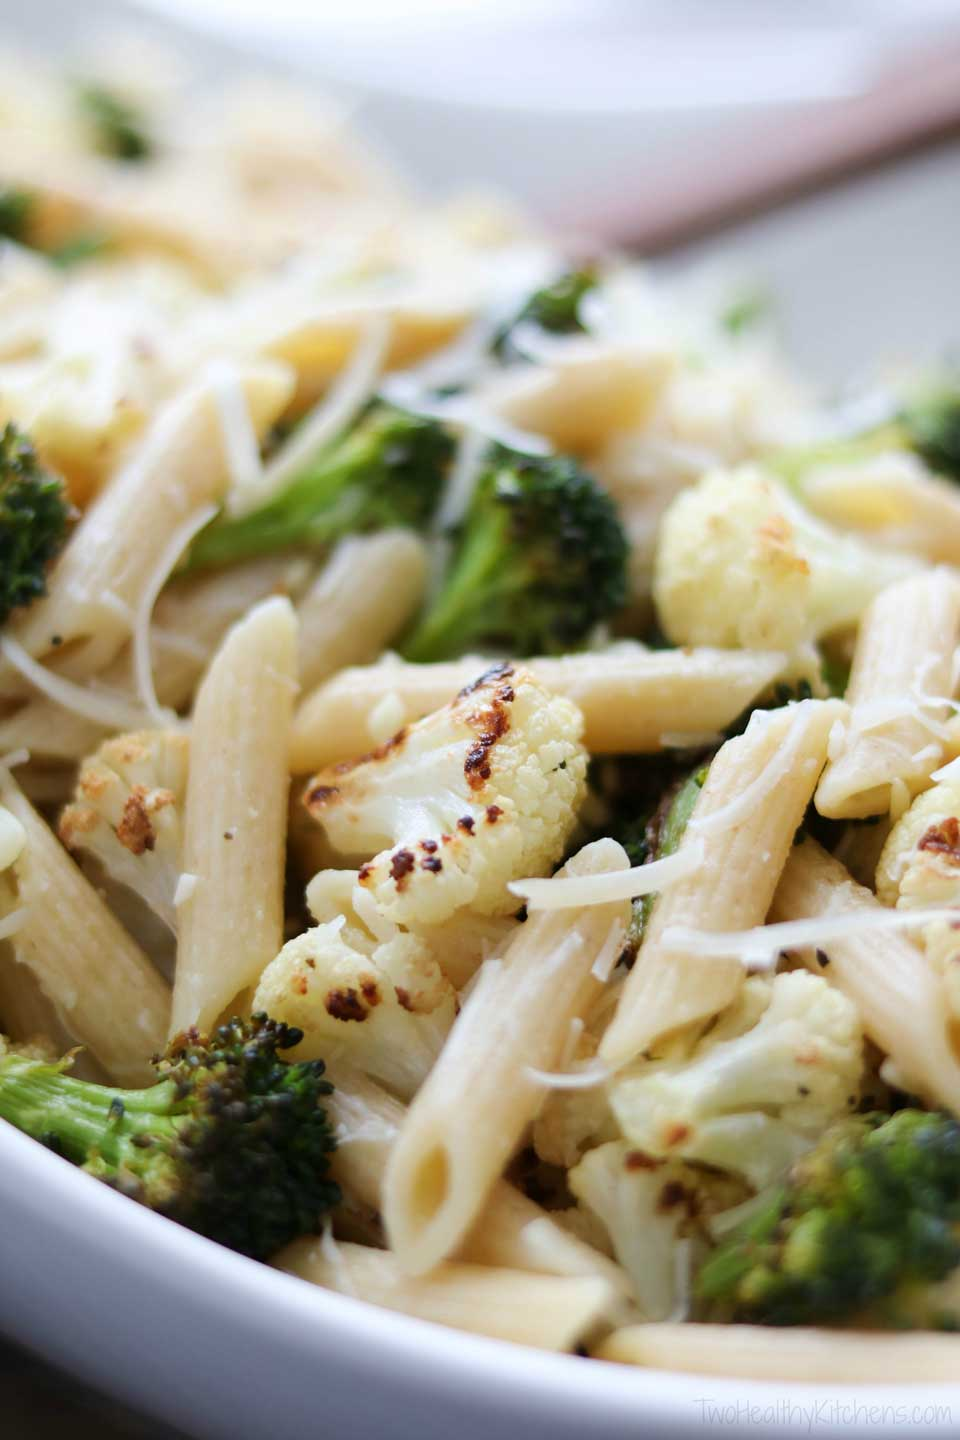 Pasta with parmesan cheese is a simple and elegant meal, but the flavor and nutrition profiles get a huge bump when you add roasted vegetables to this quick dinner recipe!